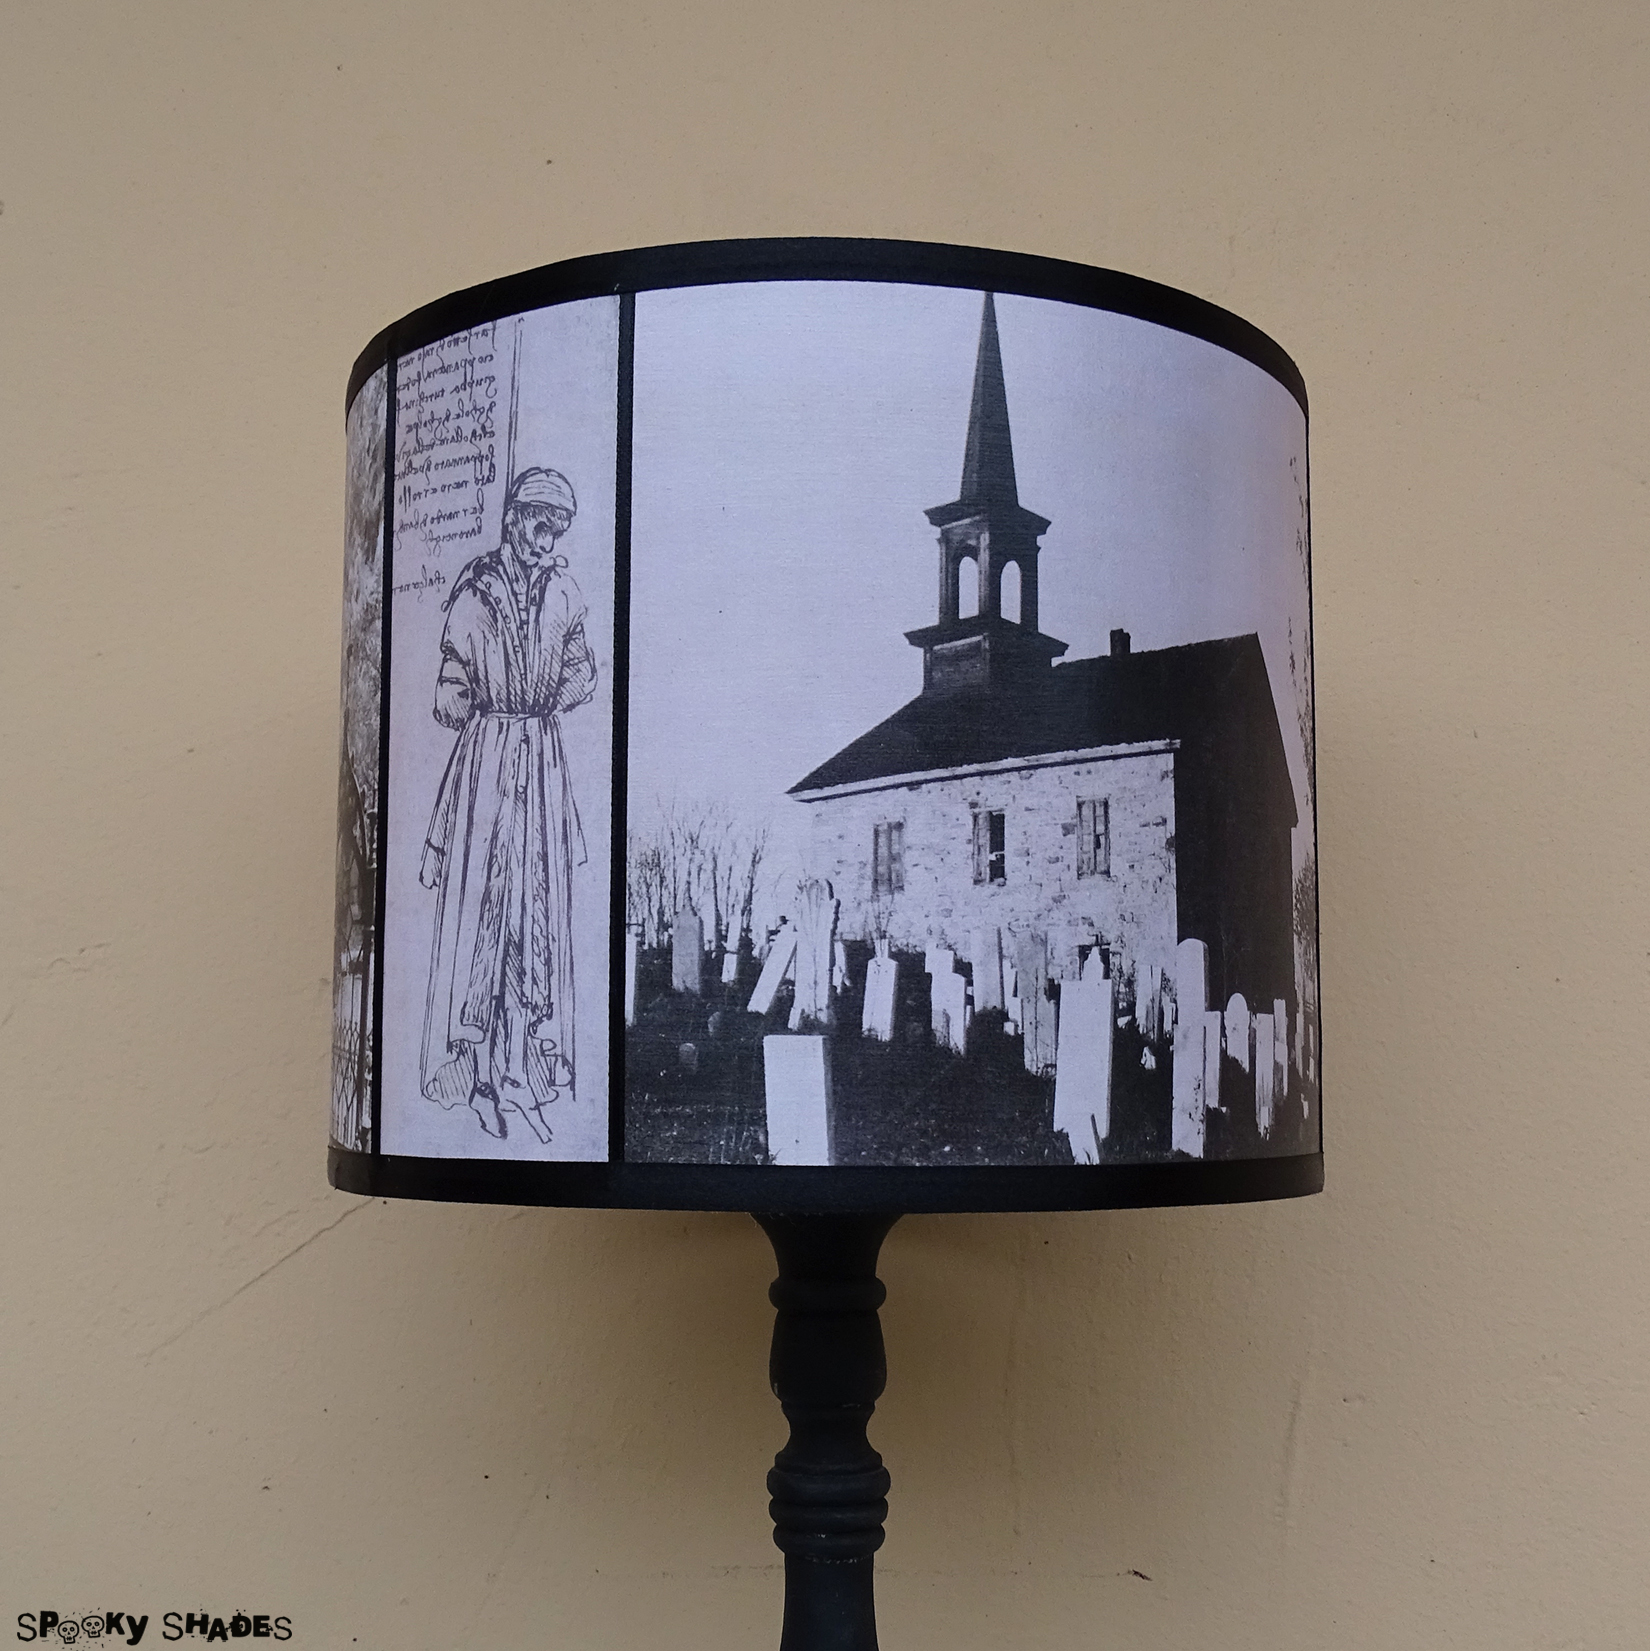 Requiescat in pace graveyards black and white gothic drum lamp shade product details aloadofball Image collections